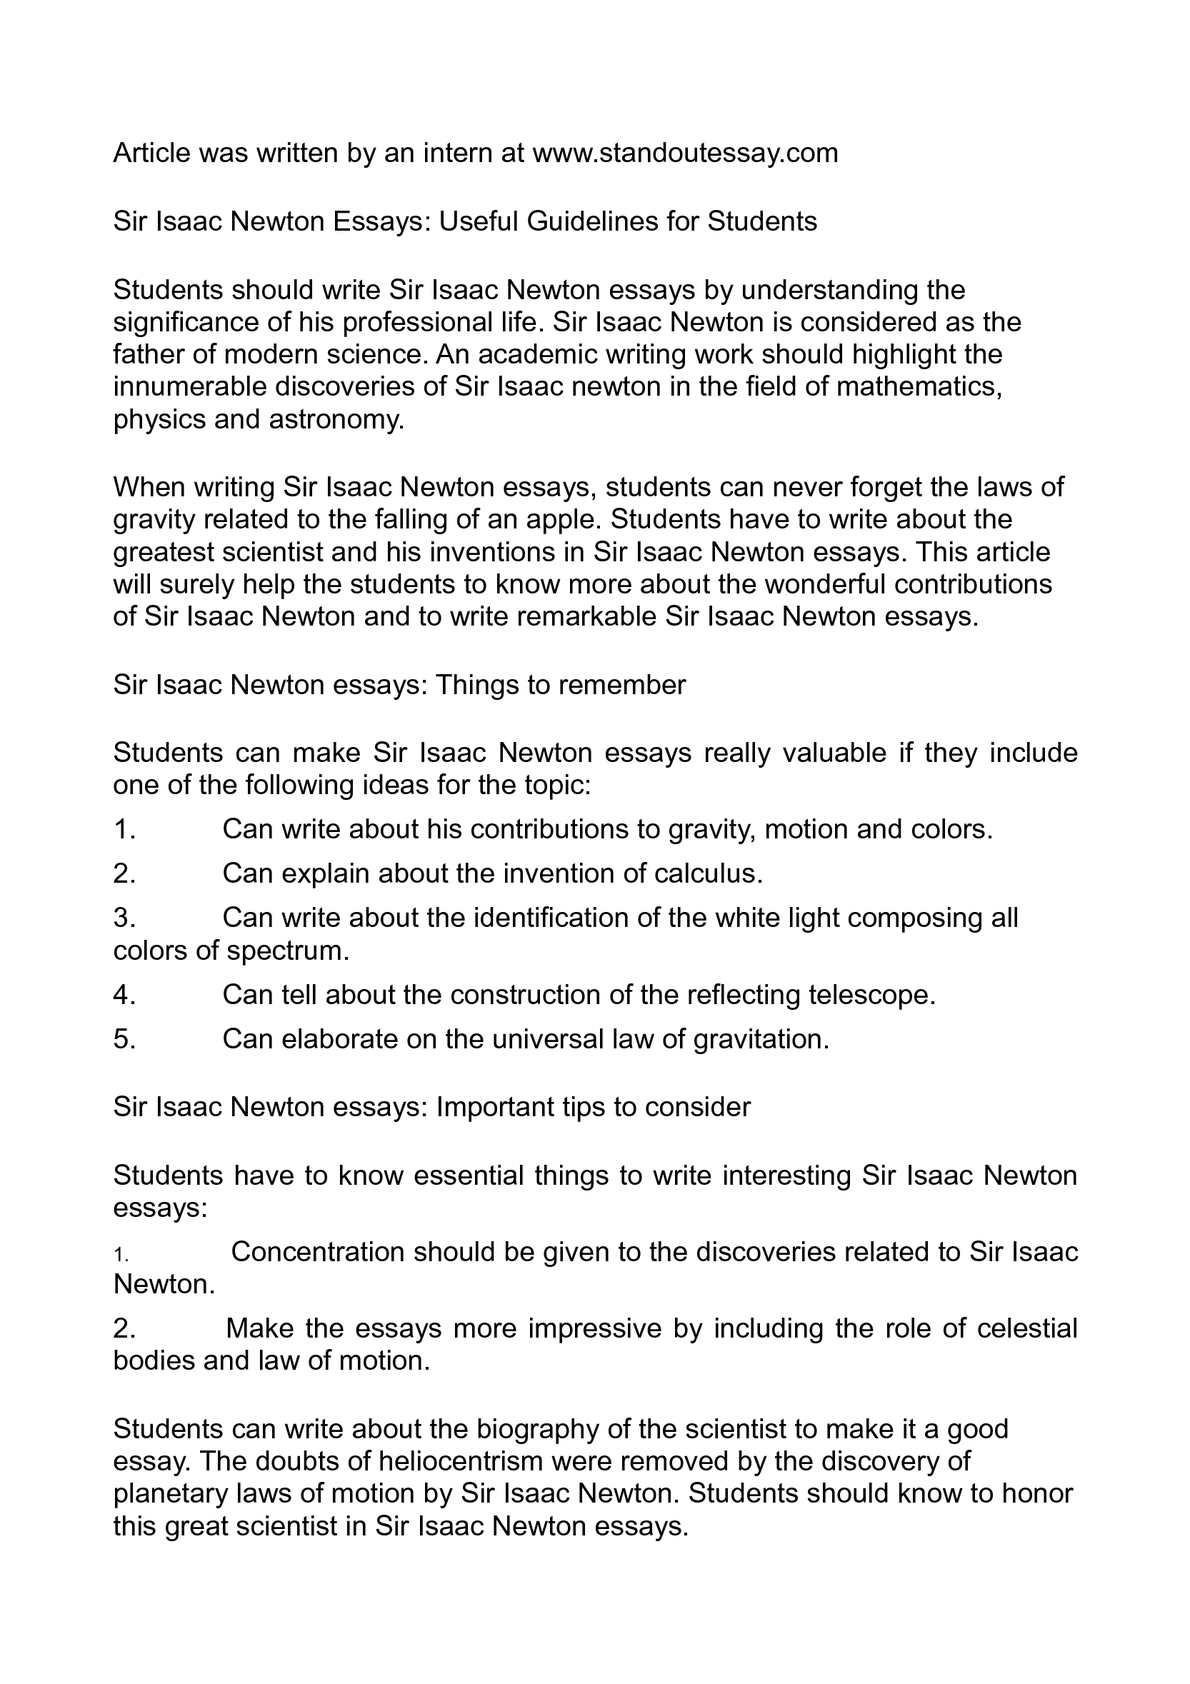 sir isaac newton essays useful guidelines for students